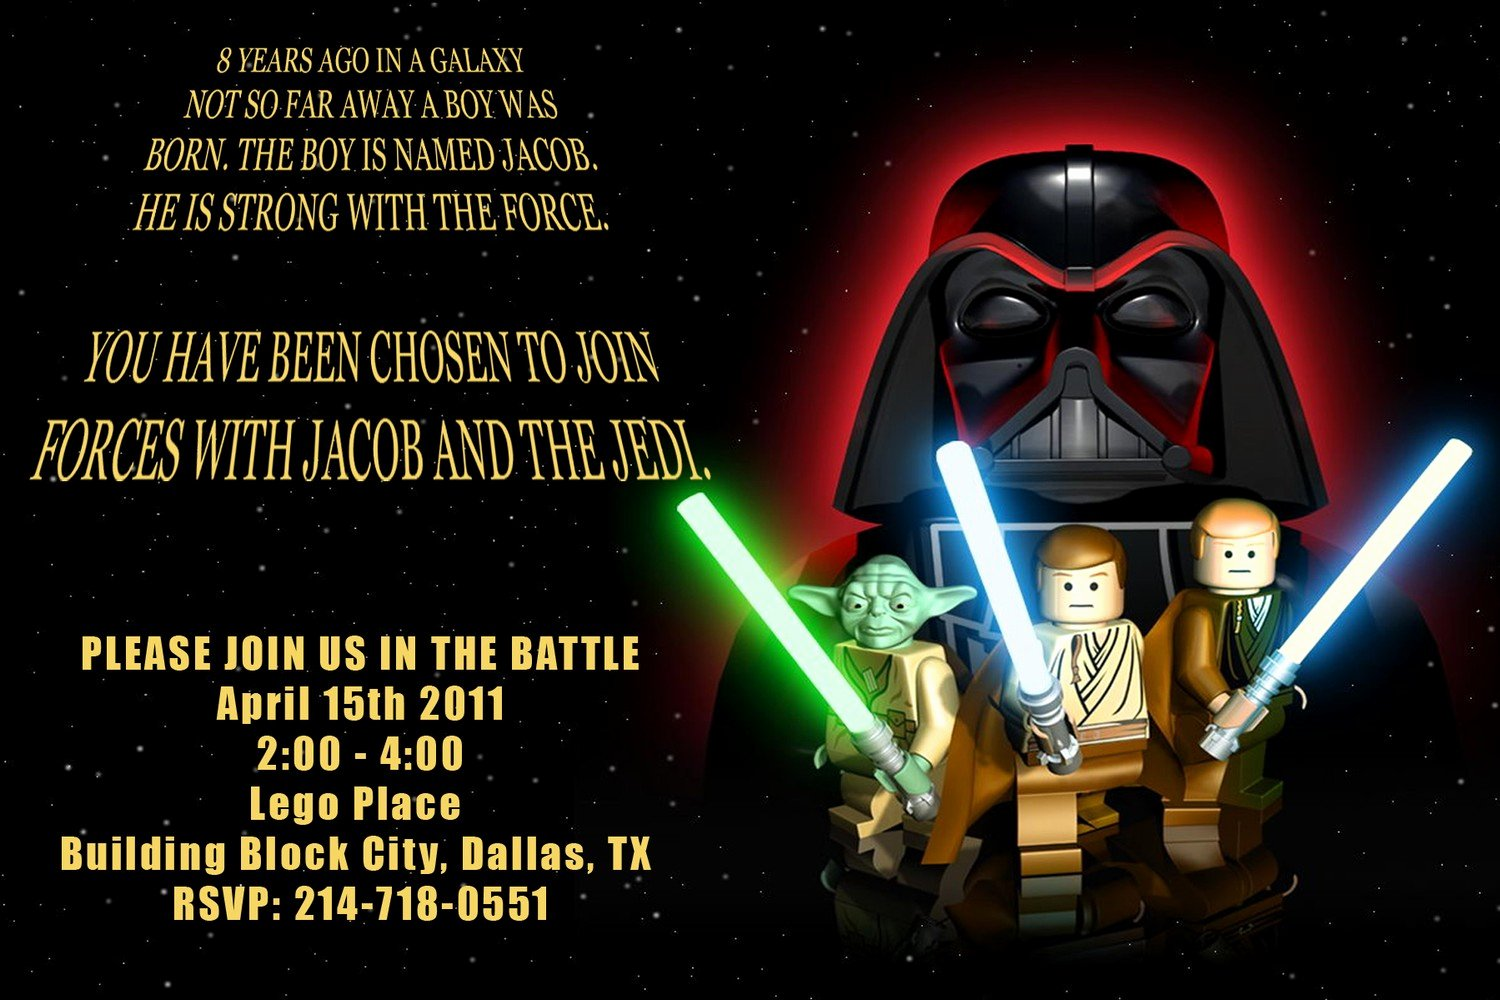 Star Wars Birthday Invitation Wording Unique Star Wars Birthday Invitations Wording